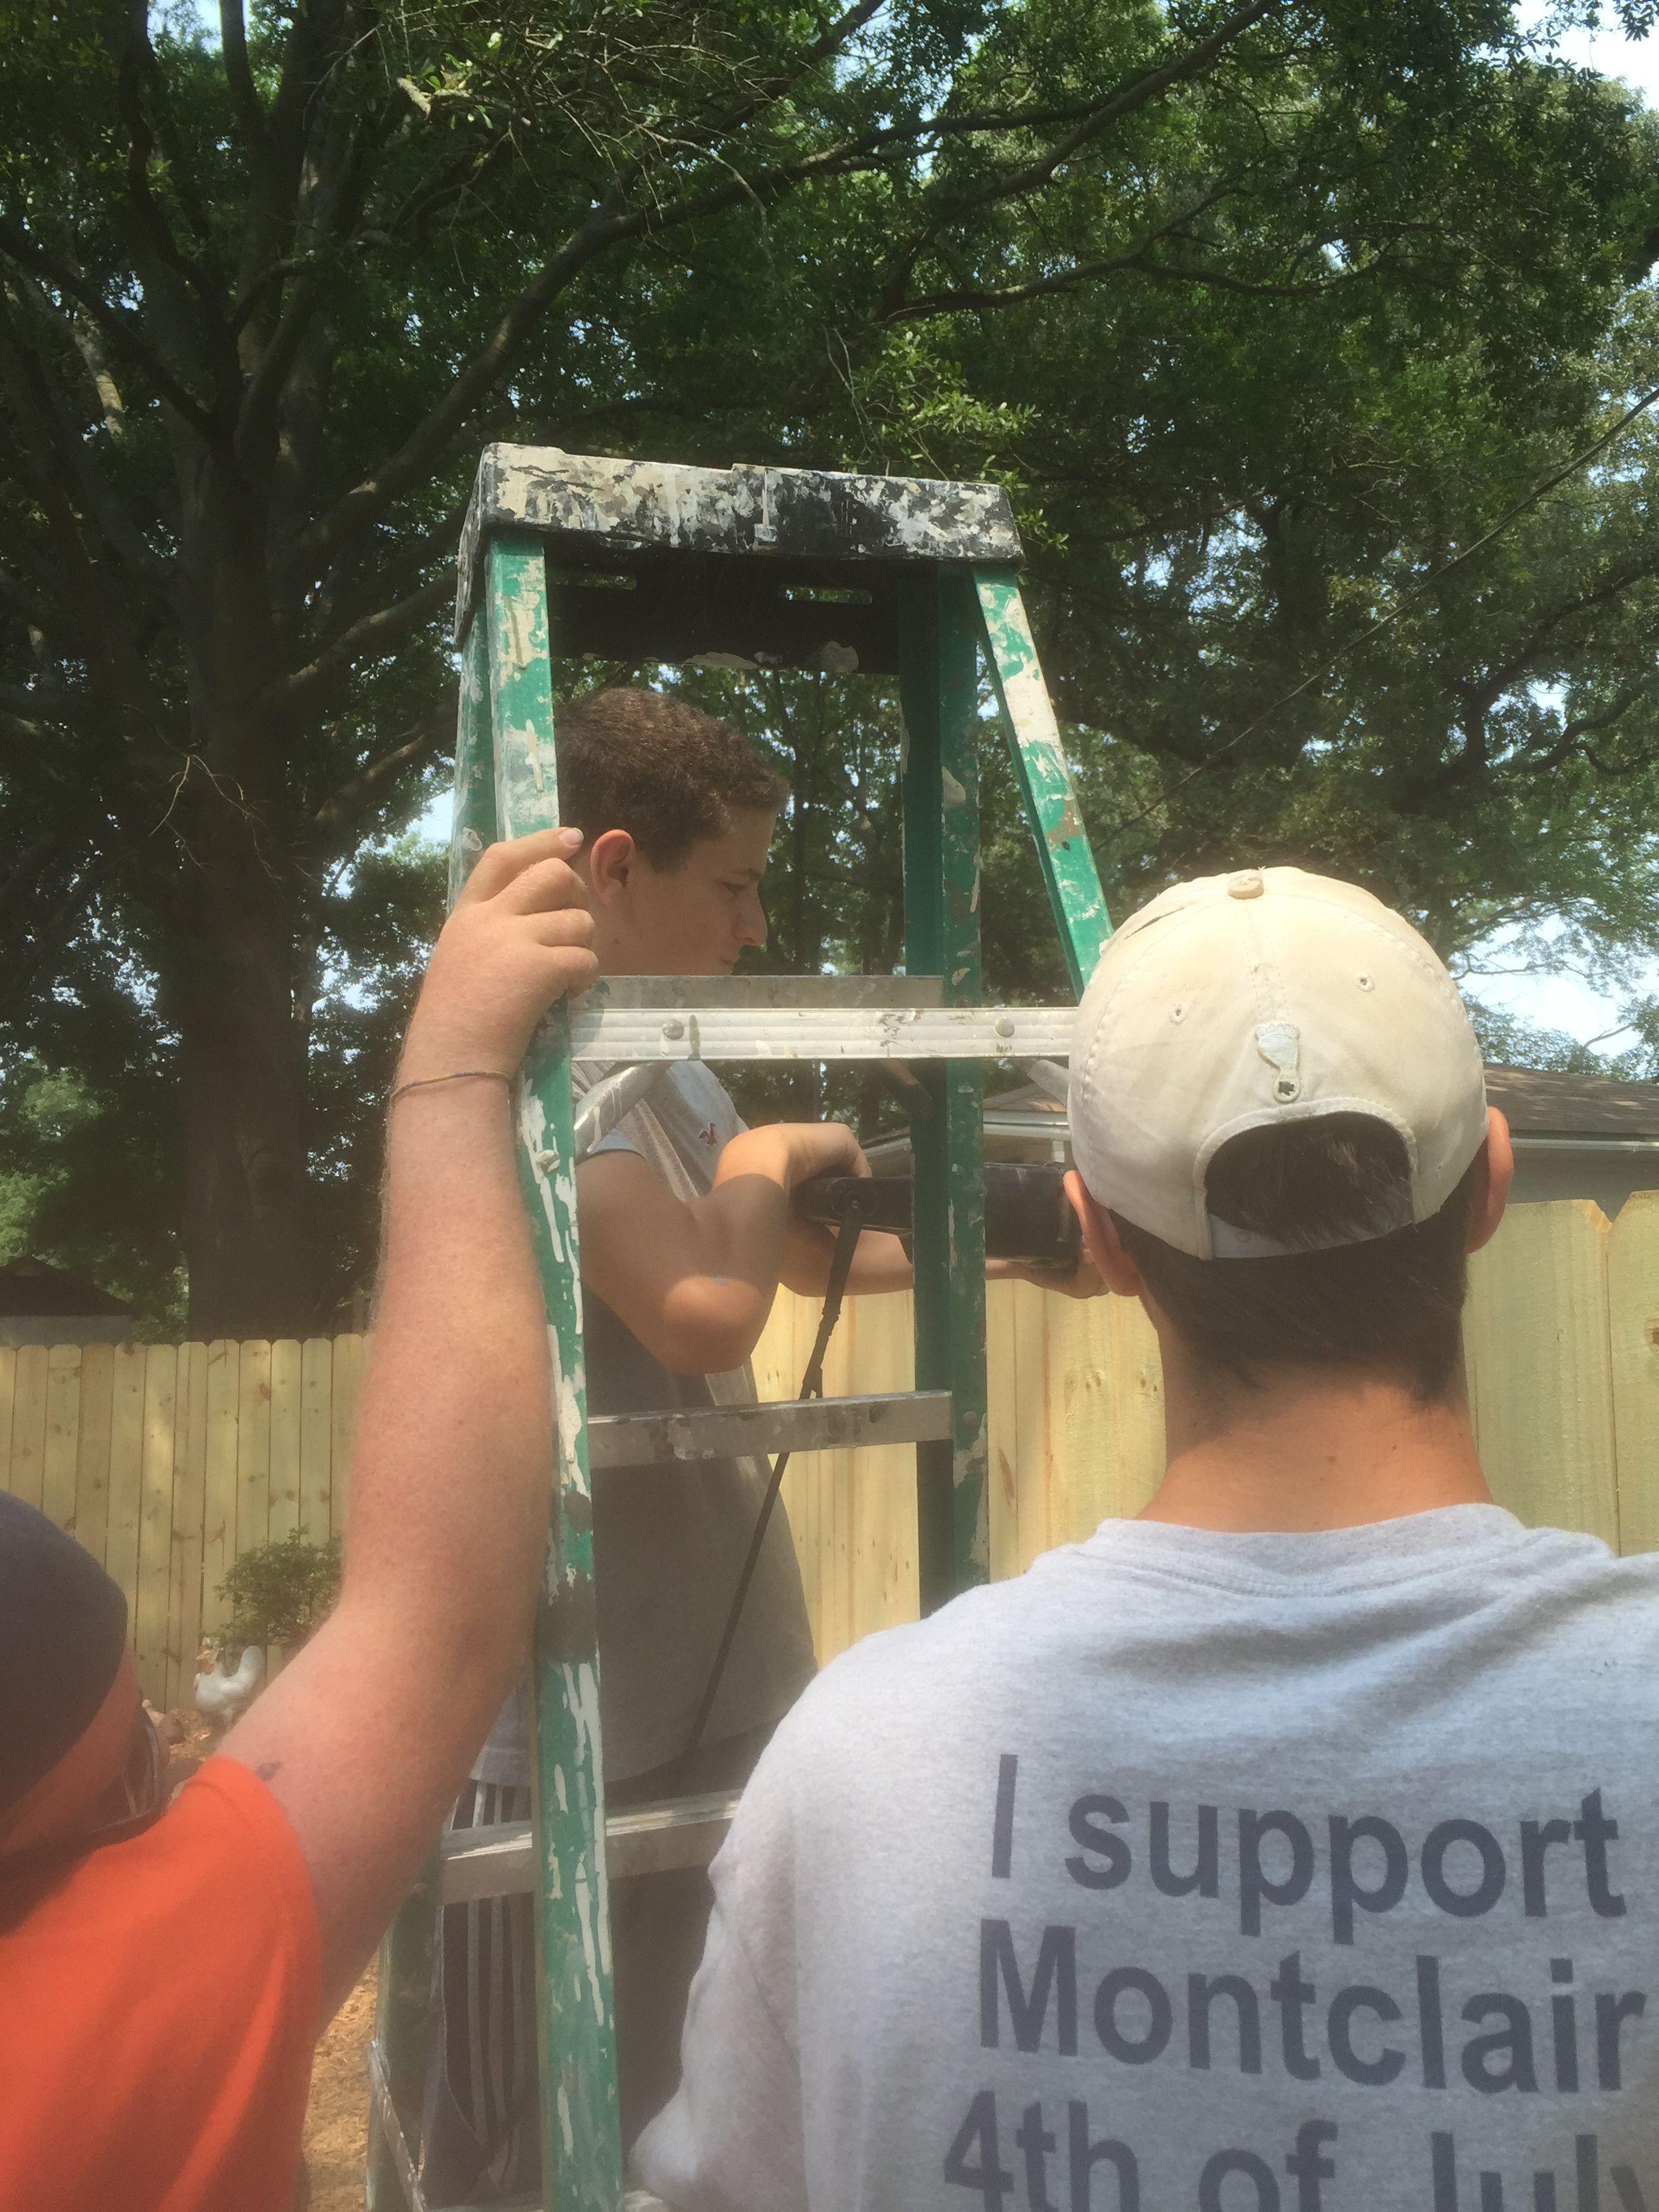 Austin Brown helps repair a fence while others assist